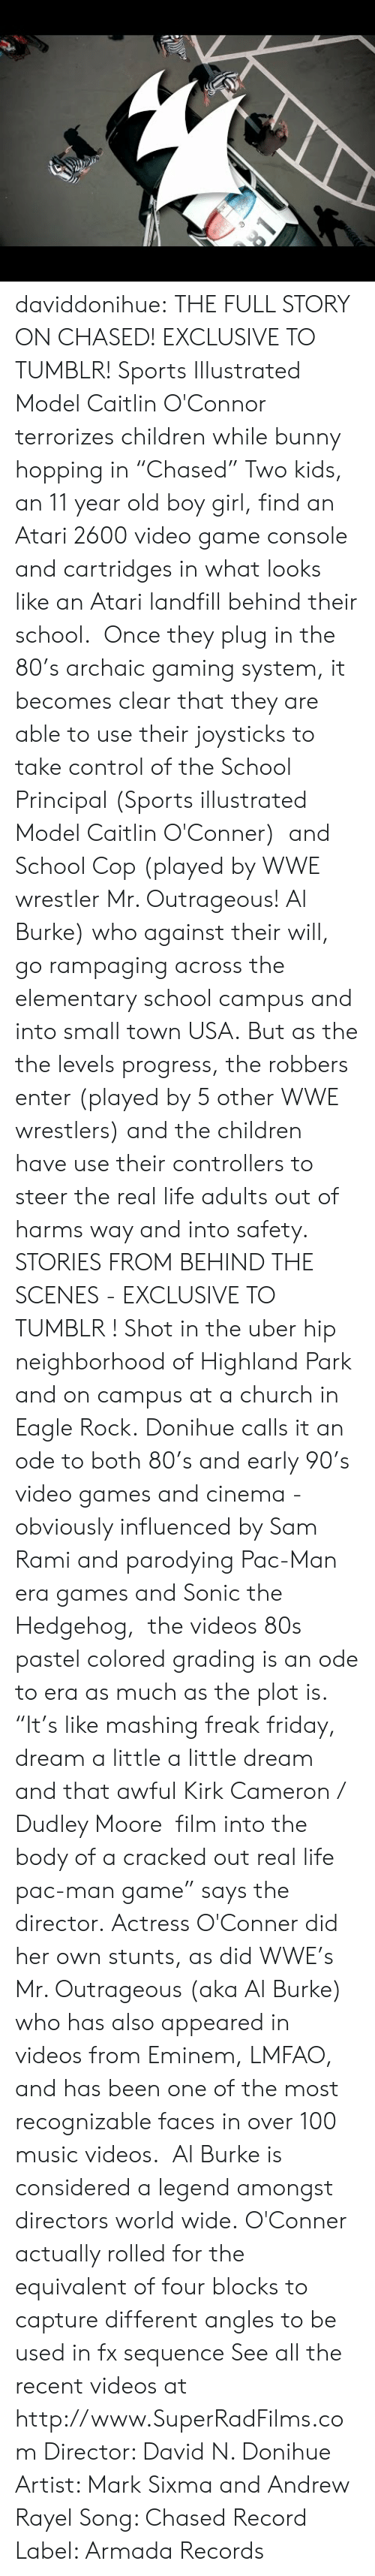 """wwe wrestlers: daviddonihue:  THE FULL STORY ON CHASED! EXCLUSIVE TO TUMBLR! Sports Illustrated Model Caitlin O'Connor terrorizes children while bunny hopping in """"Chased"""" Two kids, an 11 year old boy  girl, find an Atari 2600 video game console and cartridges in what looks like an Atari landfill behind their school. Once they plug in the 80's archaic gaming system, it becomes clear that they are able to use their joysticks to take control of the School Principal (Sports illustrated Model Caitlin O'Conner) and School Cop (played by WWE wrestler Mr. Outrageous! Al Burke) who against their will, go rampaging across the elementary school campus and into small town USA. But as the the levels progress, the robbers enter (played by 5 other WWE wrestlers) and the children have use their controllers to steer the real life adults out of harms way and into safety.    STORIES FROM BEHIND THE SCENES - EXCLUSIVE TO TUMBLR ! Shot in the uber hip neighborhood of Highland Park and on campus at a church in Eagle Rock. Donihue calls it an ode to both 80's and early 90's video games and cinema - obviously influenced by Sam Rami and parodying Pac-Man era games and Sonic the Hedgehog, the videos 80s pastel colored grading is an ode to era as much as the plot is. """"It's like mashing freak friday, dream a little a little dream and that awful Kirk Cameron / Dudley Moore film into the body of a cracked out real life pac-man game"""" says the director. Actress O'Conner did her own stunts, as did WWE's Mr. Outrageous (aka Al Burke) who has also appeared in videos from Eminem, LMFAO, and has been one of the most recognizable faces in over 100 music videos. Al Burke is considered a legend amongst directors world wide. O'Conner actually rolled for the equivalent of four blocks to capture different angles to be used in fx sequence See all the recent videos at http://www.SuperRadFilms.com Director: David N. Donihue Artist: Mark Sixma and Andrew Rayel Song: Chased Record Label: Armada Records"""